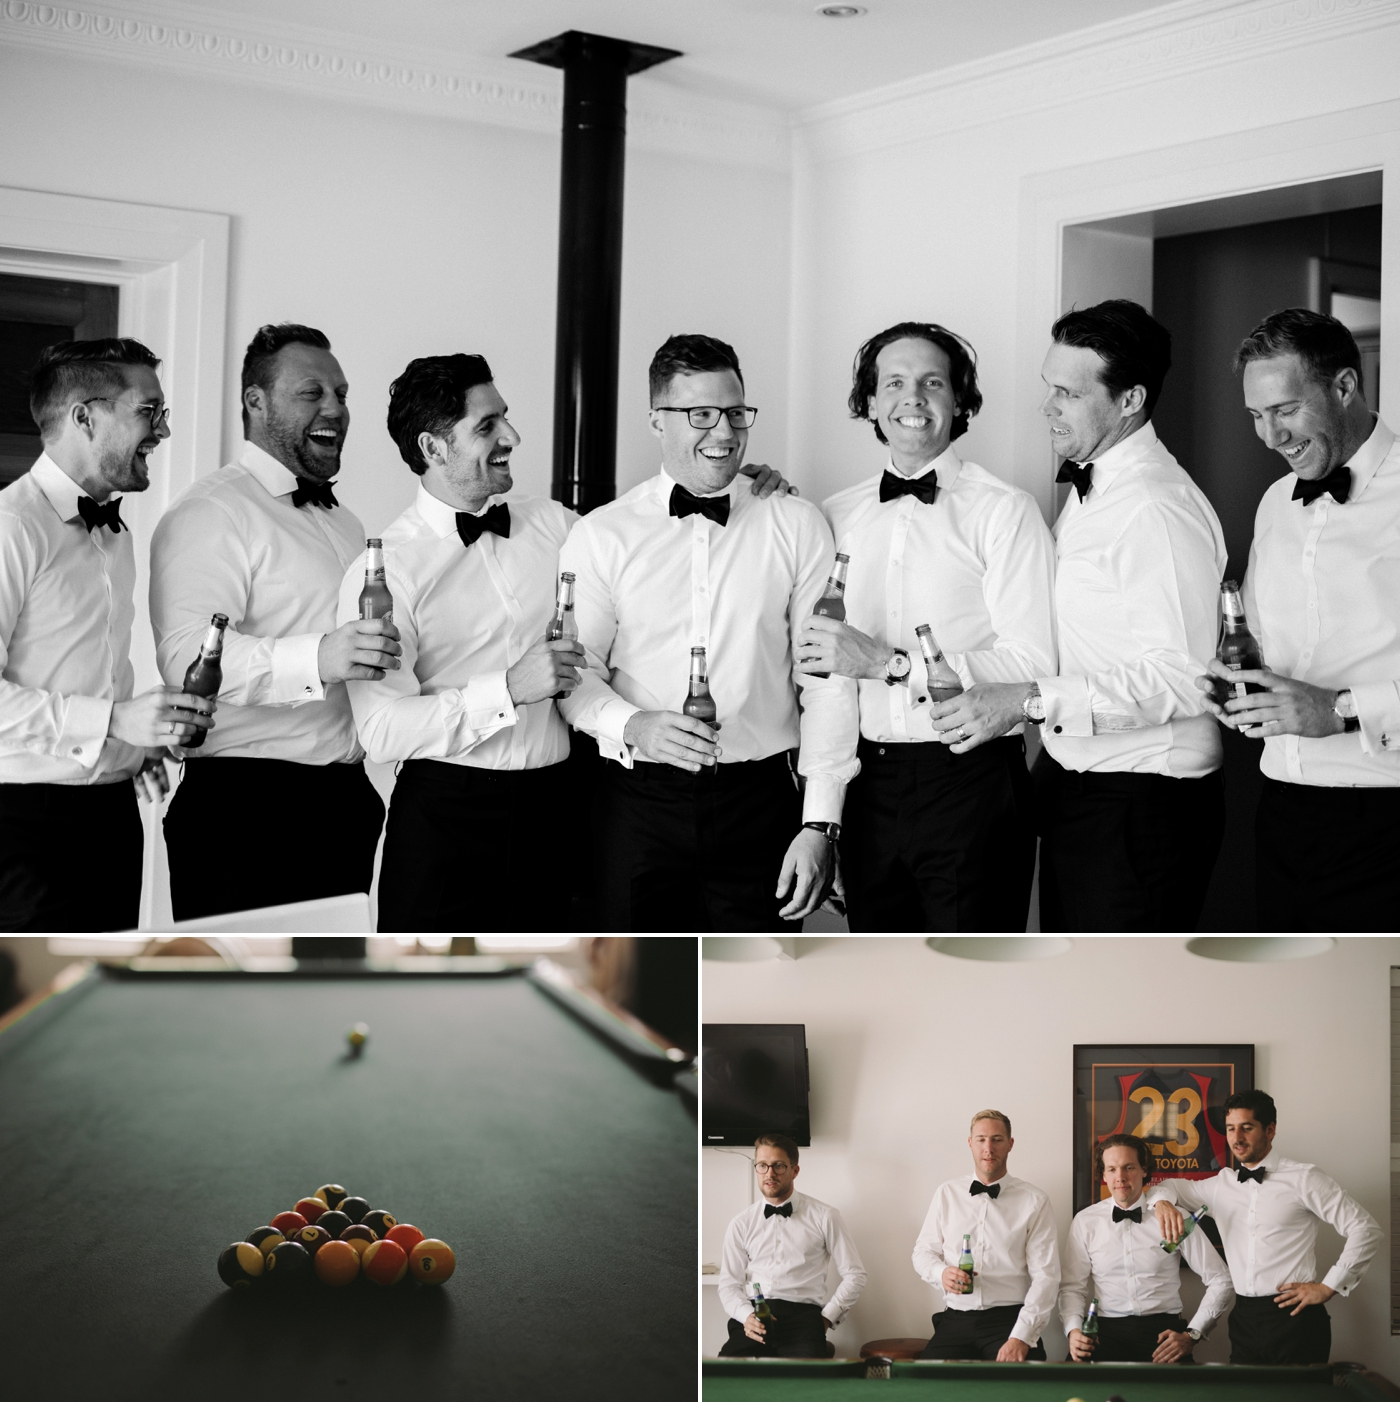 Alex & James - Glen Ewin Pulpshed Wedding Photography - Beautiful Wedding Photographer Adelaide - Fine Art wedding photographer - Katherine Schultz - www.katherineschultzphotography.com_0003.jpg